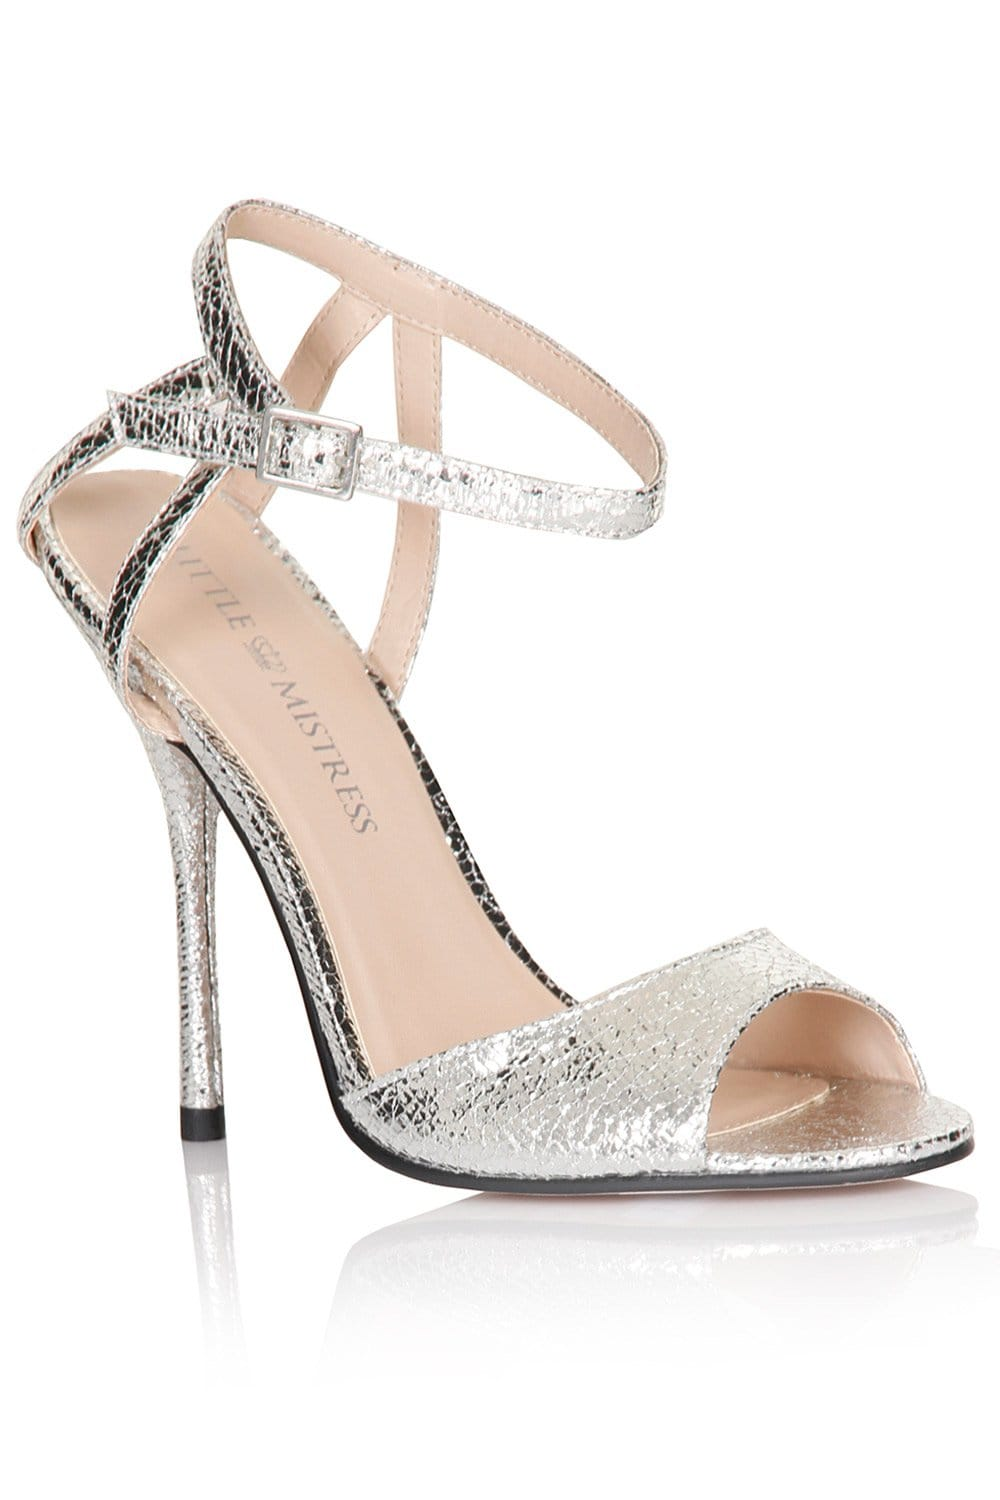 Little Mistress Footwear Silver Metallic Strap Peep Toe Heels ...